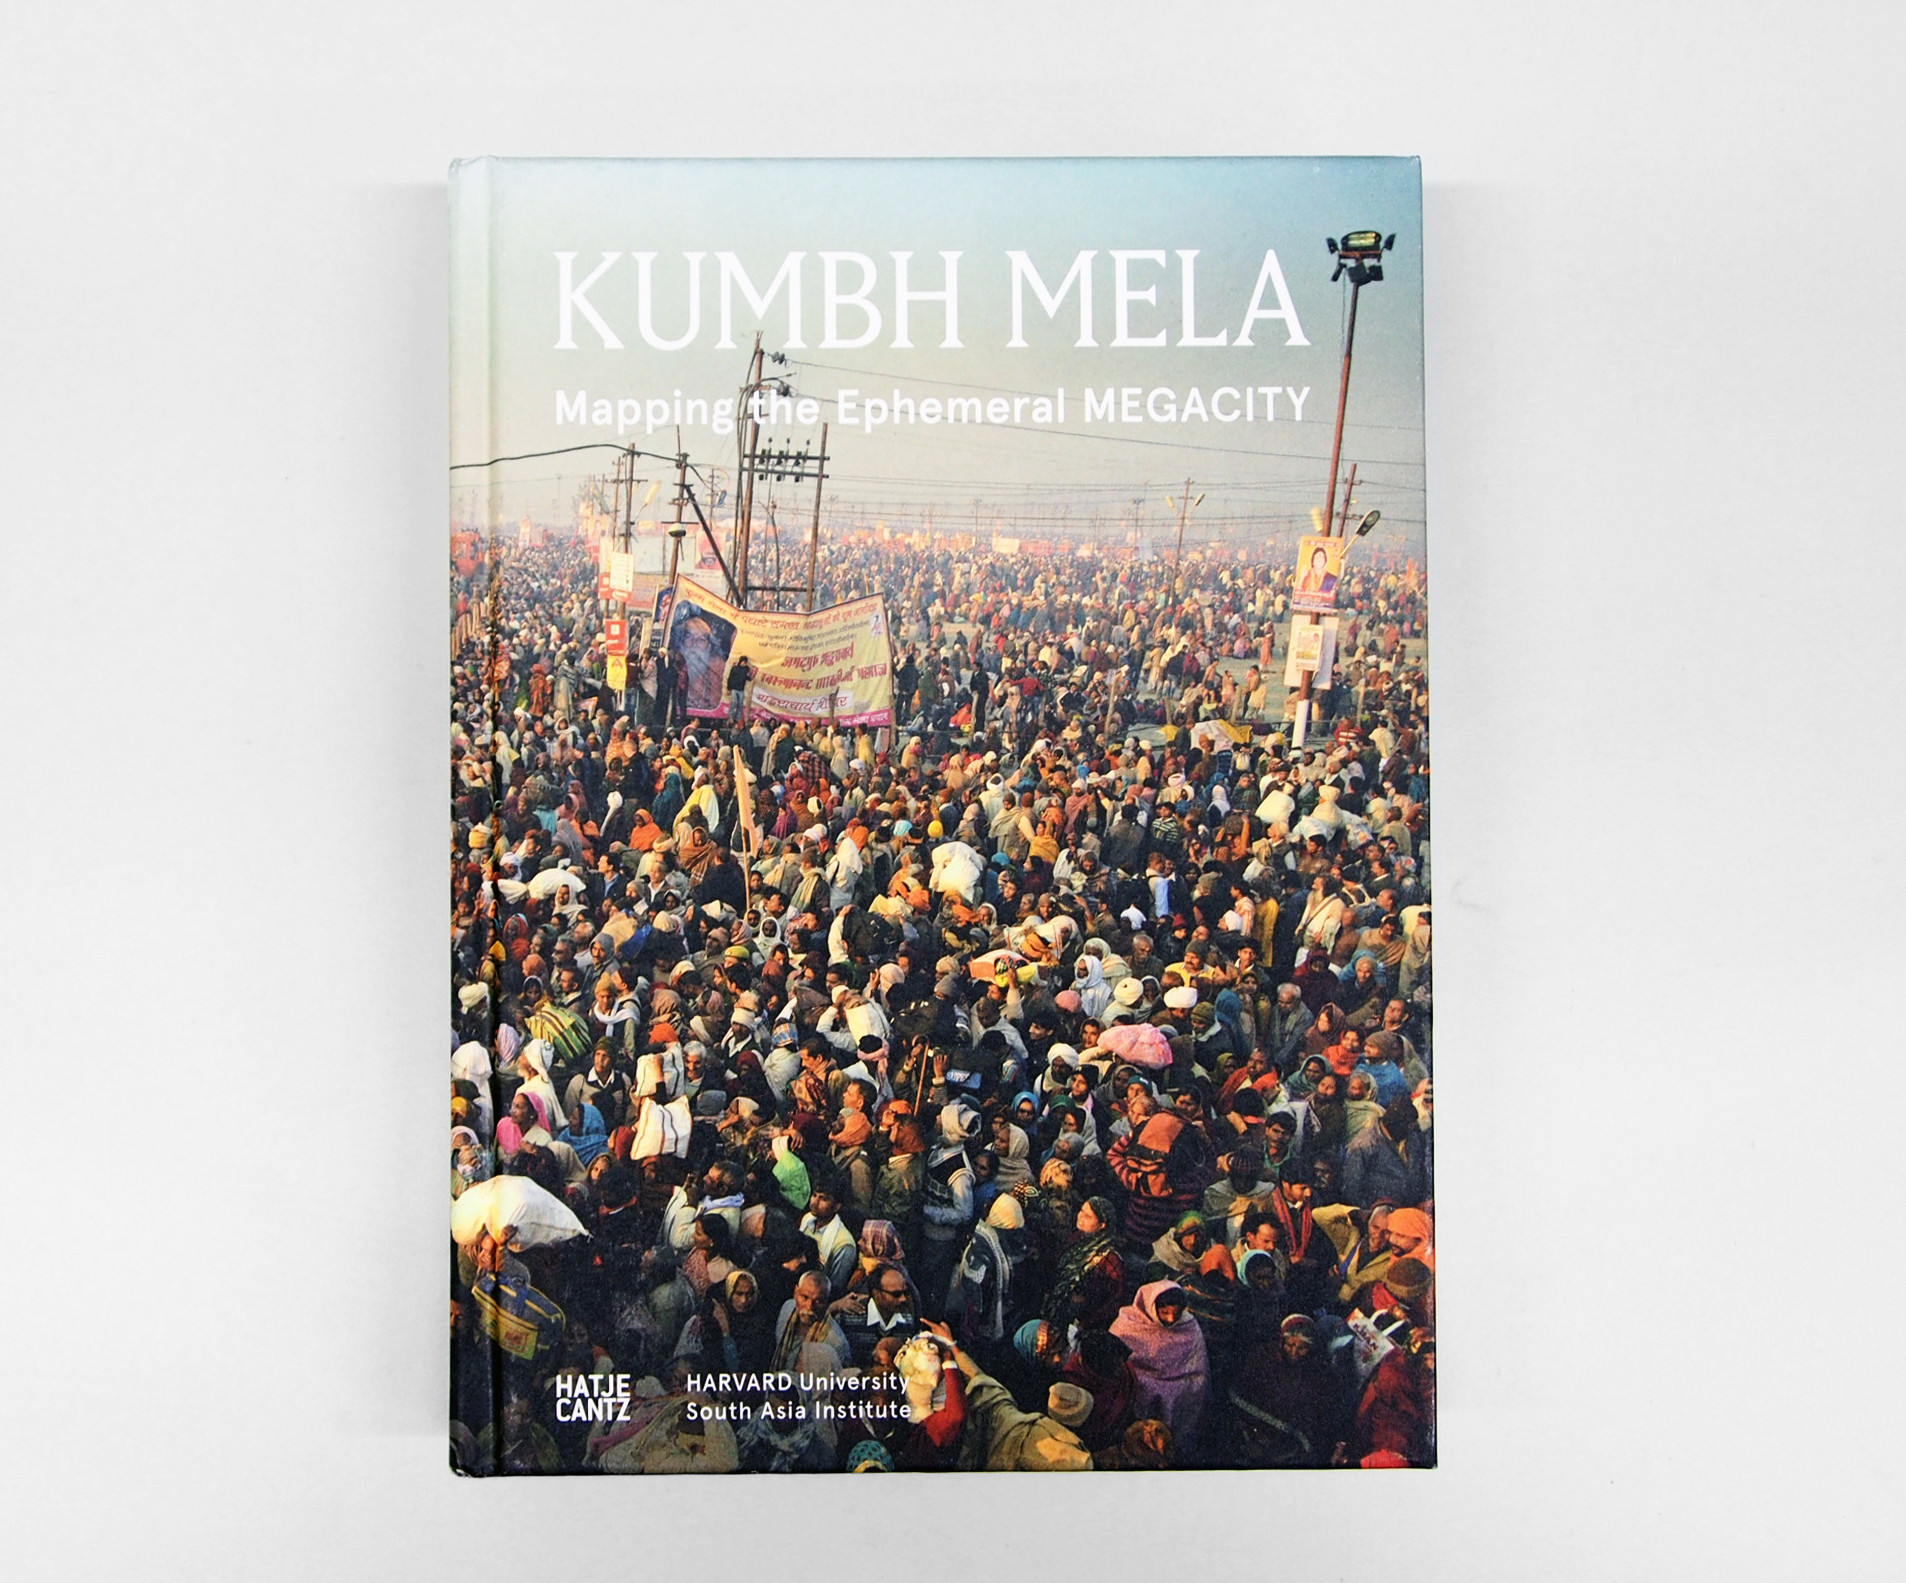 Kumbh Mela: Designing the World's Largest Gathering Of People, Kumbh Mela, January 2013: Mapping the Ephemeral Mega City. A project by Harvard University. Published by Hatje Cantz. Image © Felipe Vera